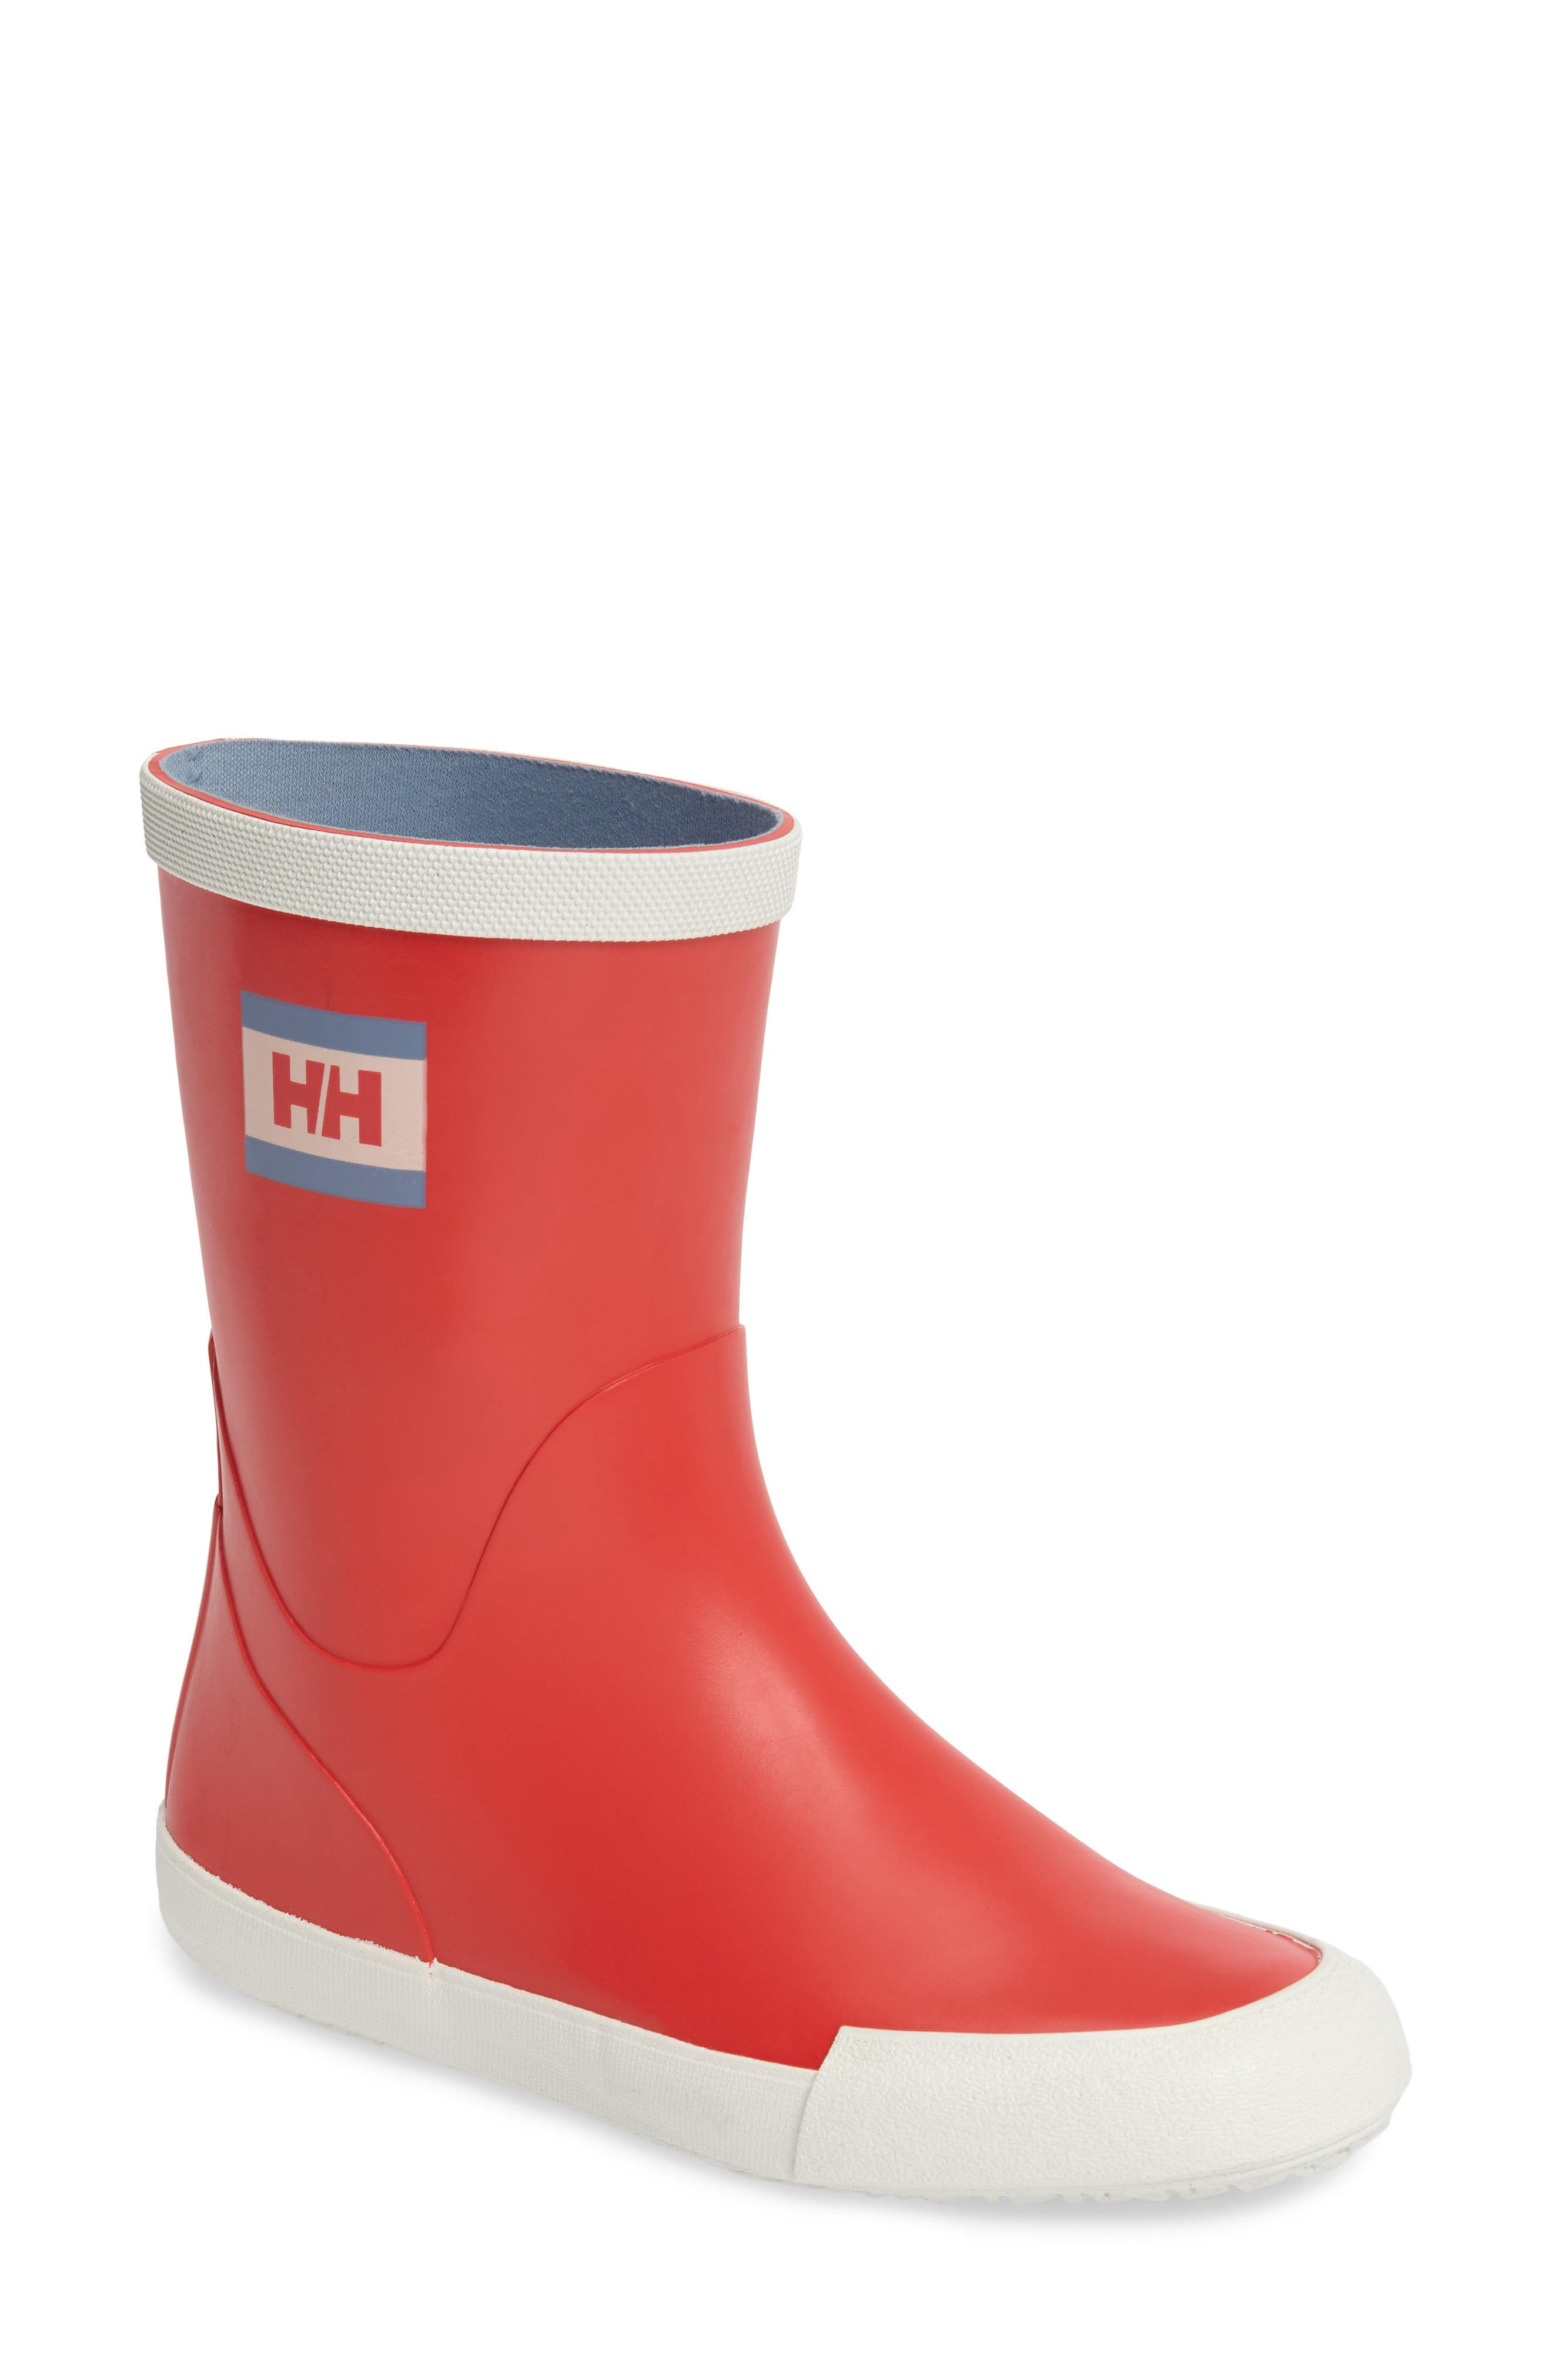 Main Image - Helly Hansen Nordvick Rain Boot (Women)